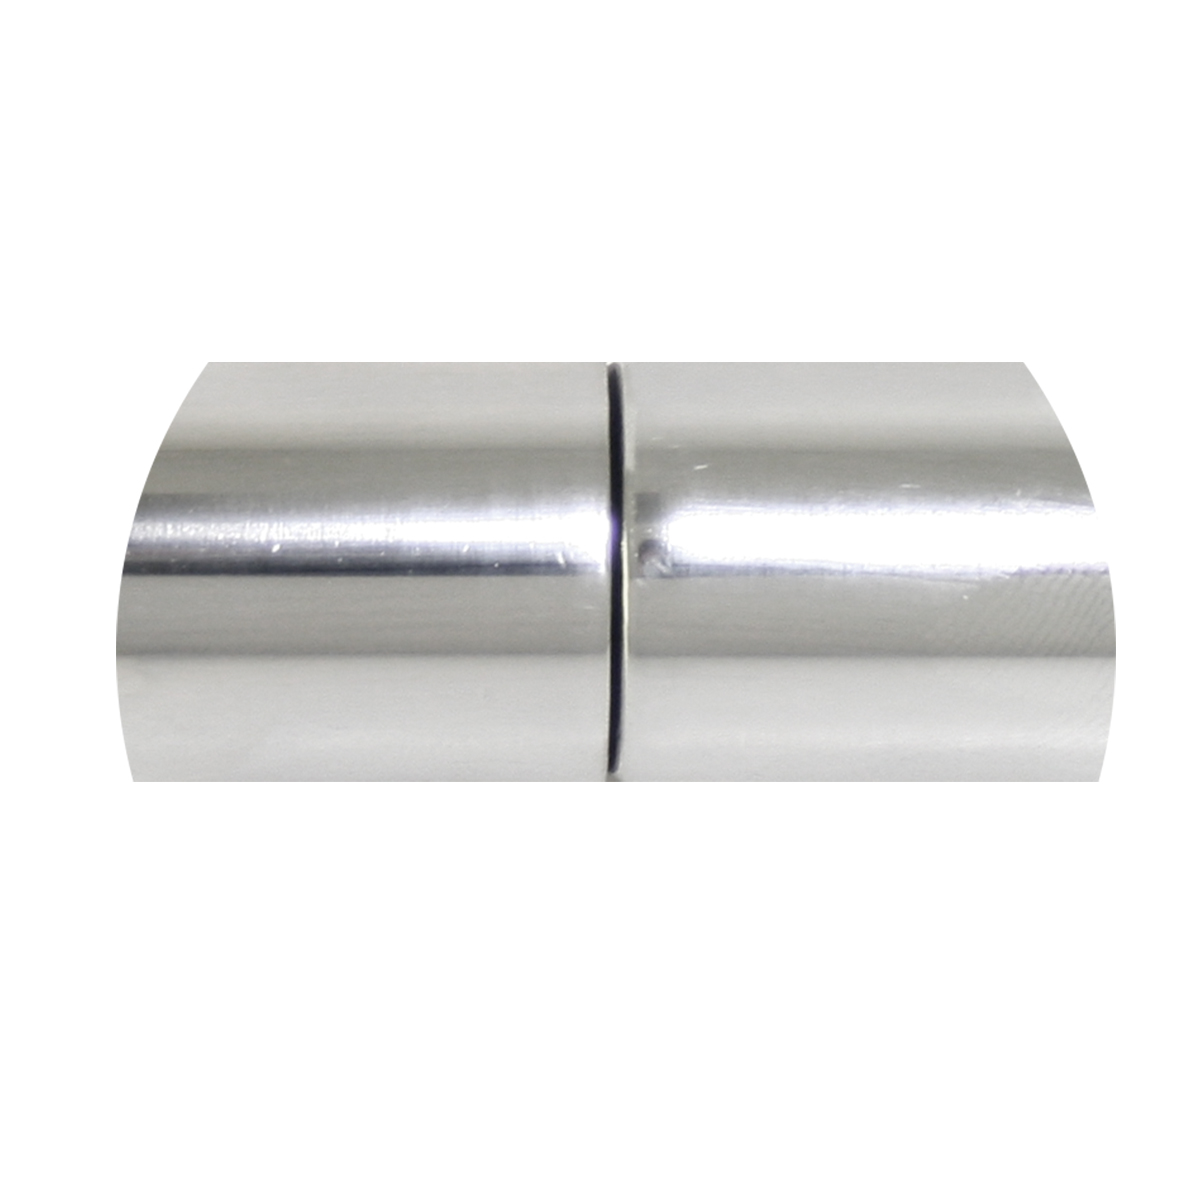 Chrome Steel Gear Shift Extension